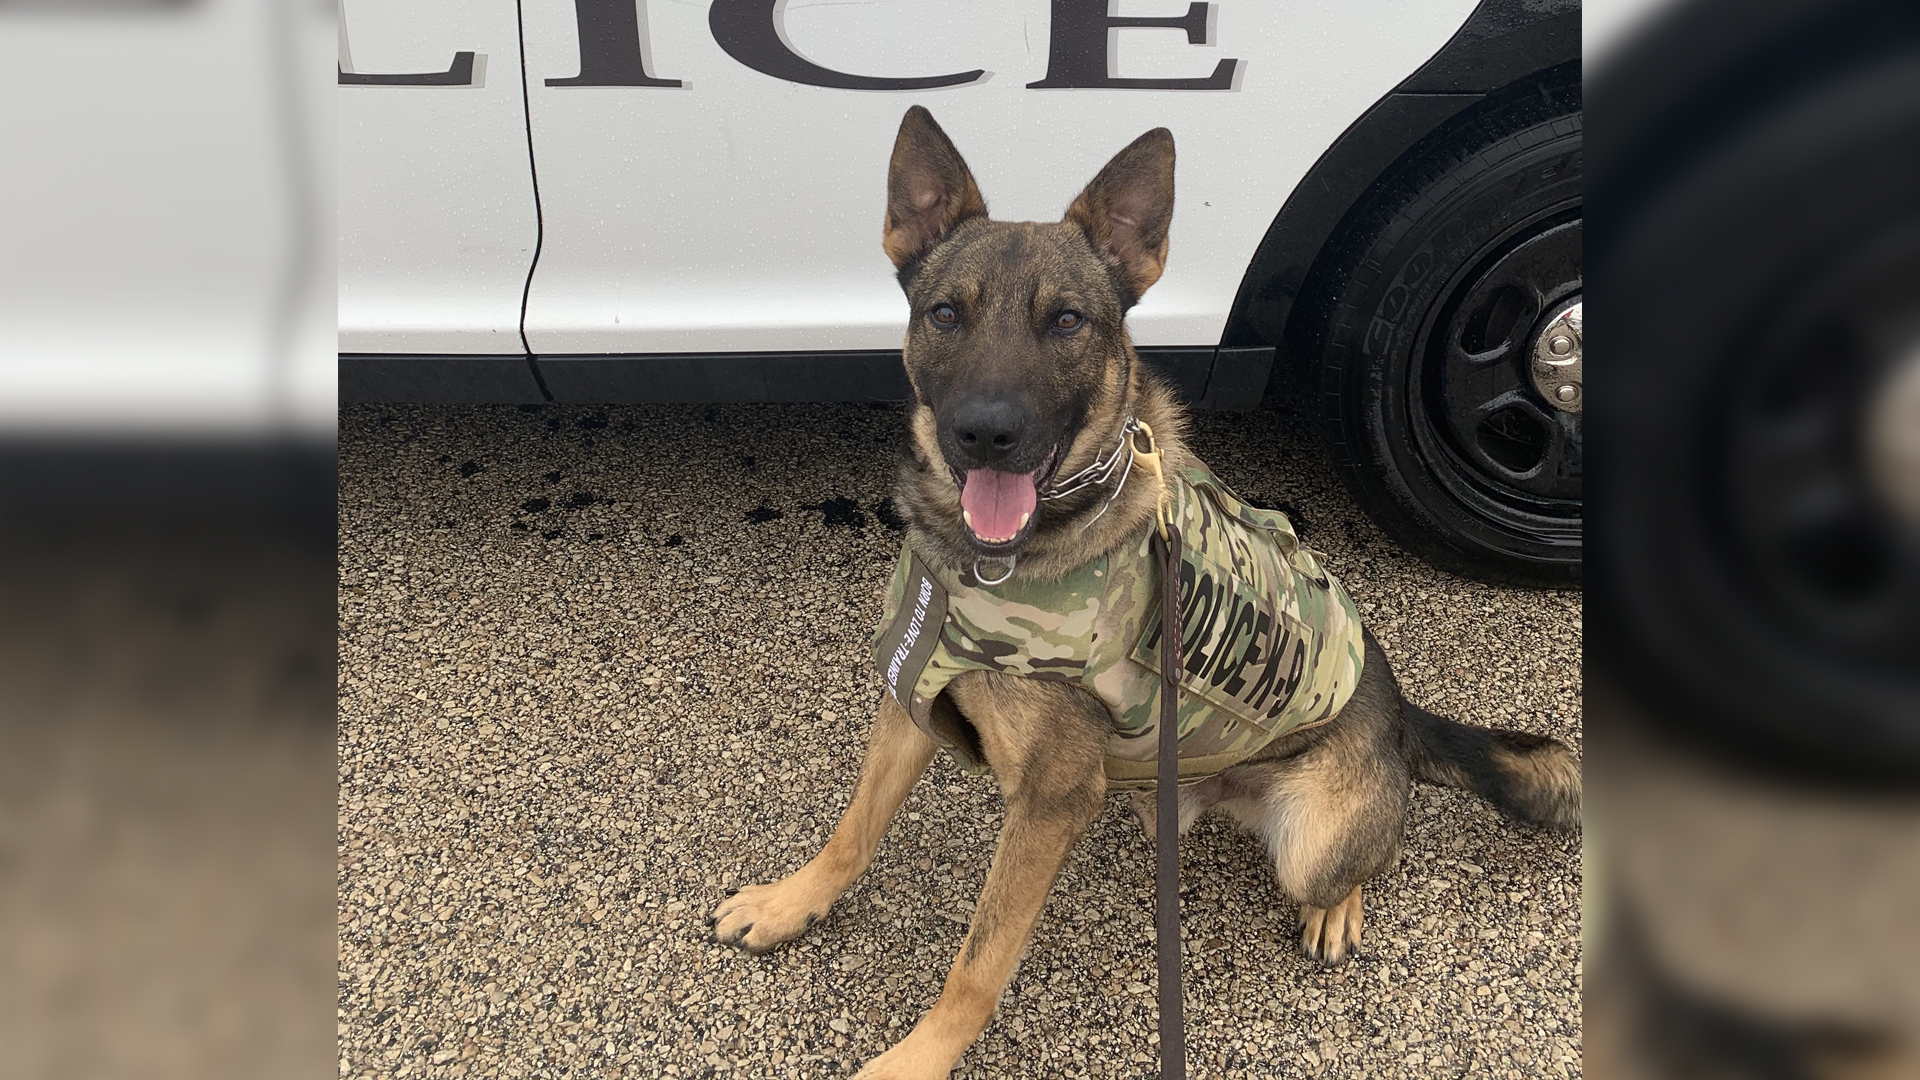 Galesburg Police Department's K9 Zeus shows off his bullet and stab protective vest (photo: Galesburg Police Department)